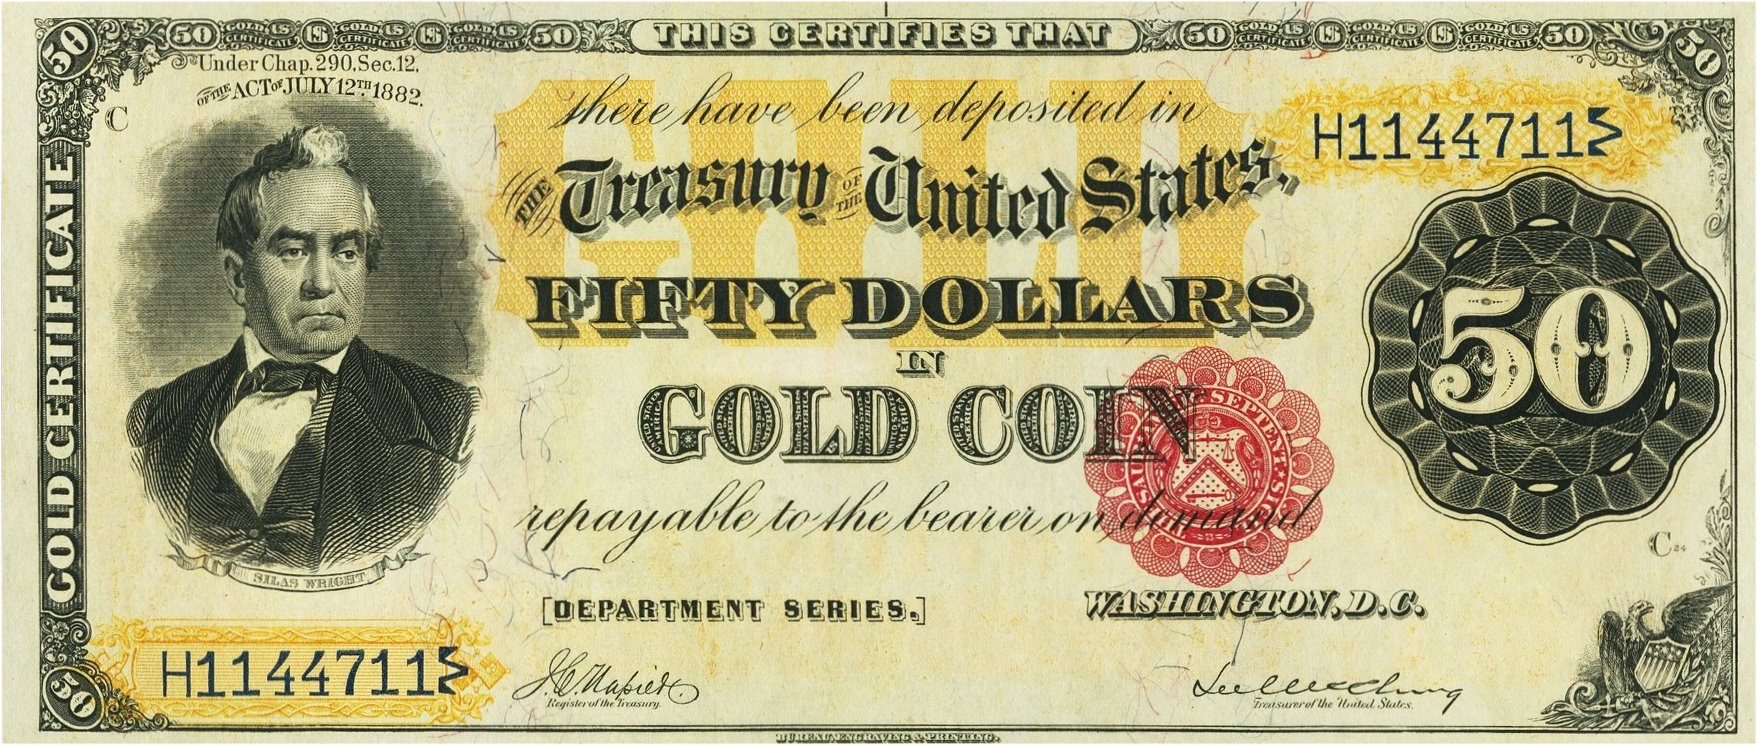 Gold certificates and bank notes for sale donckelly 50 gold notes series 1882 1betcityfo Gallery